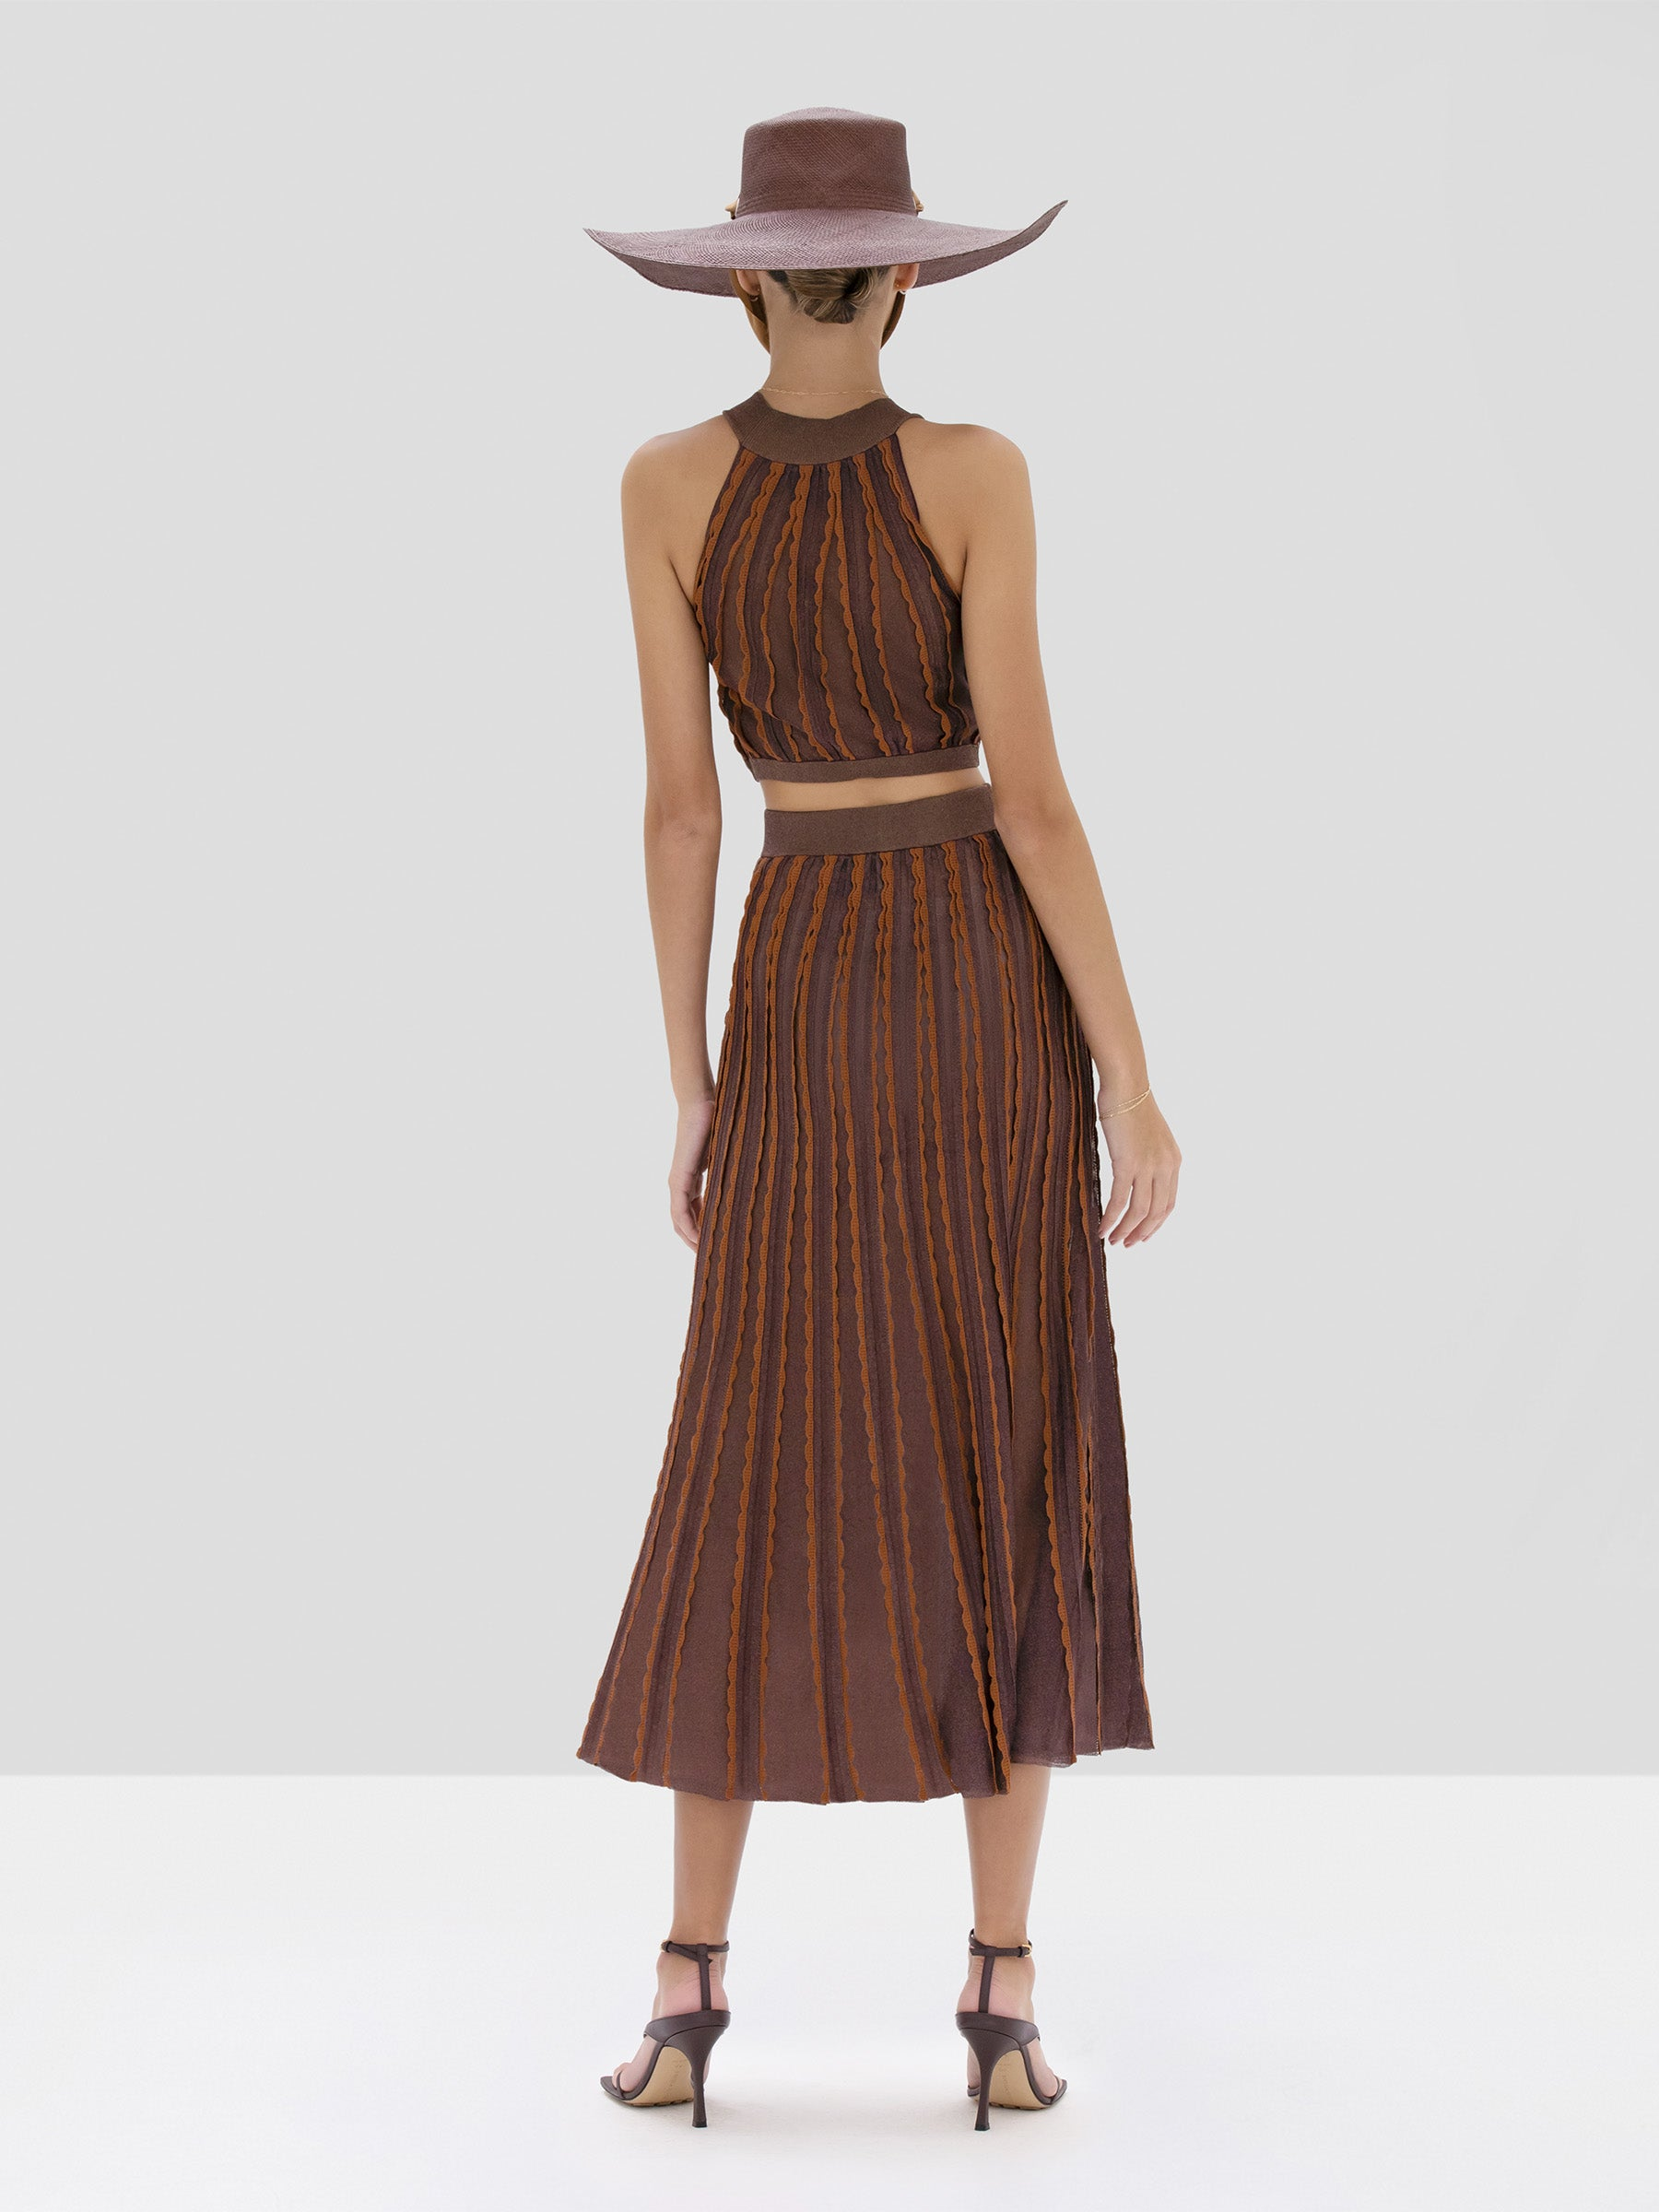 Alexis Keva Crop Top and Zea Skirt in Mocha from Spring Summer 2020 Collection - Rear View